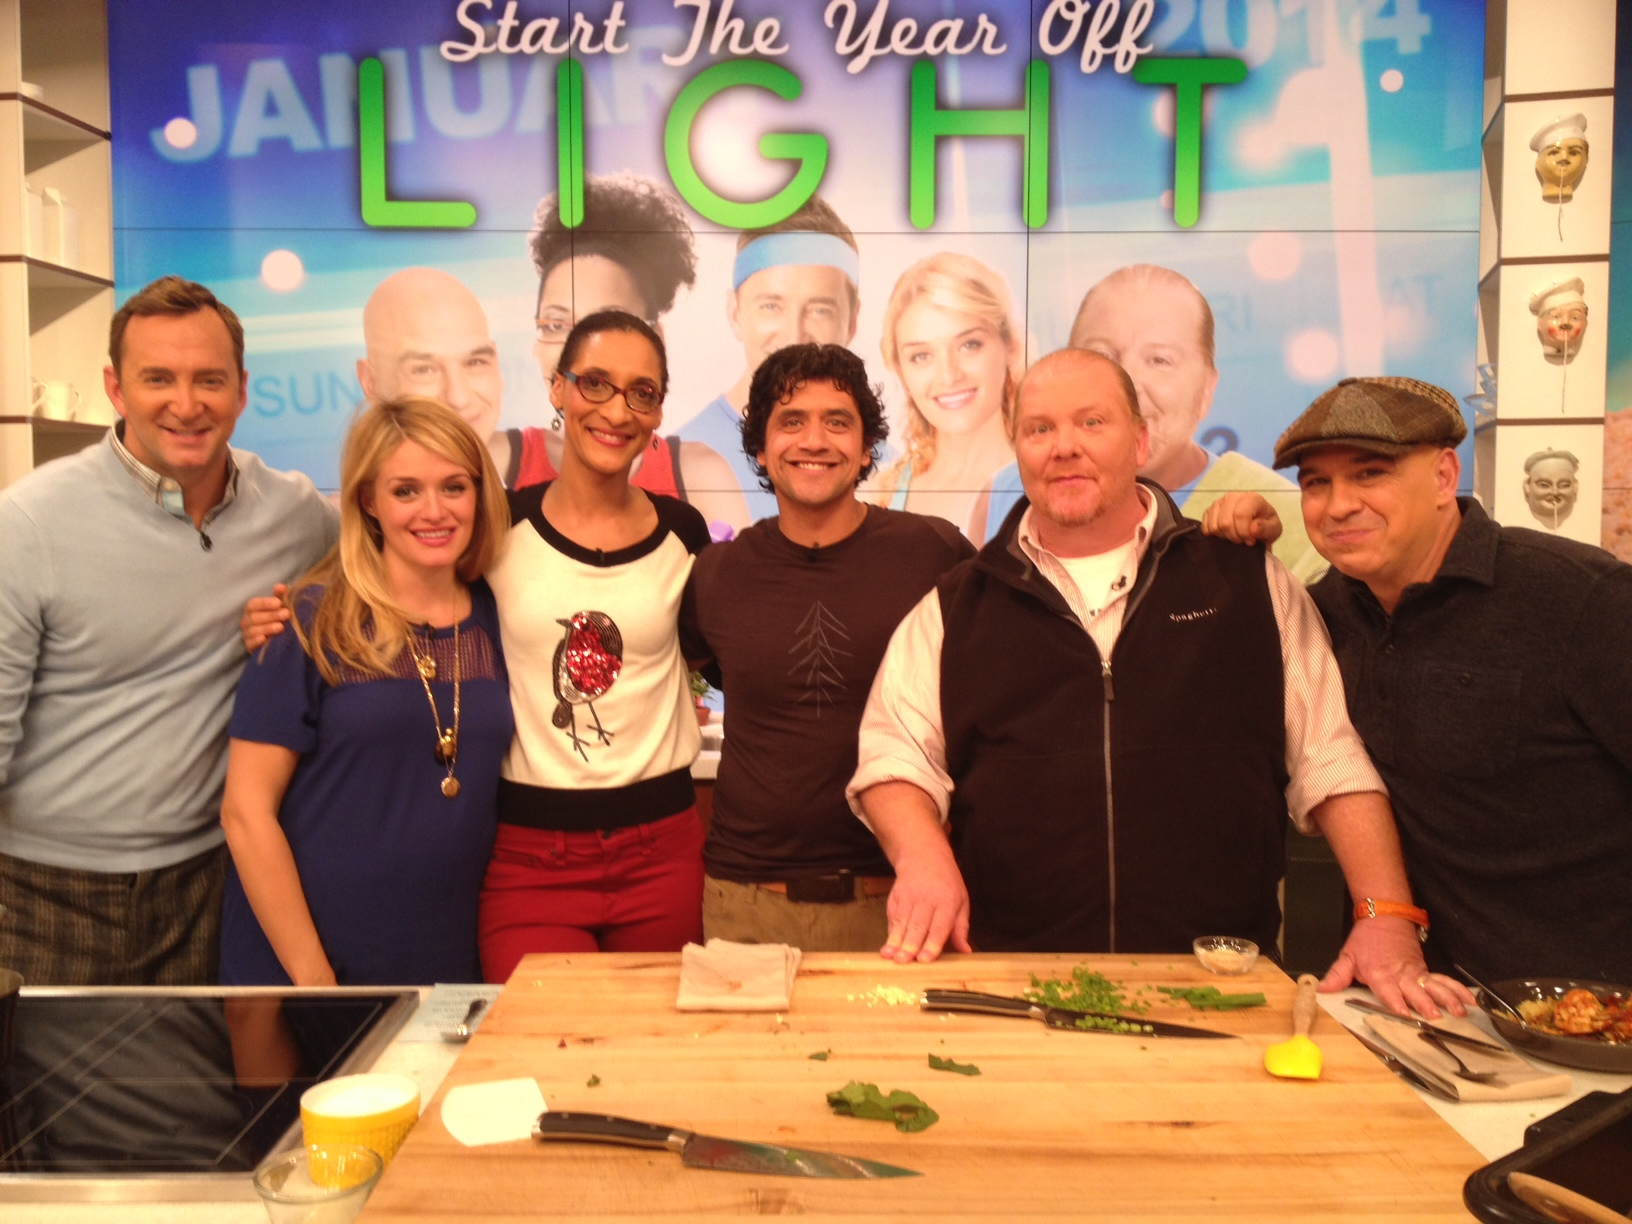 Chef Eduardo cooking it up with Mario Batali on the 'The Chew'.